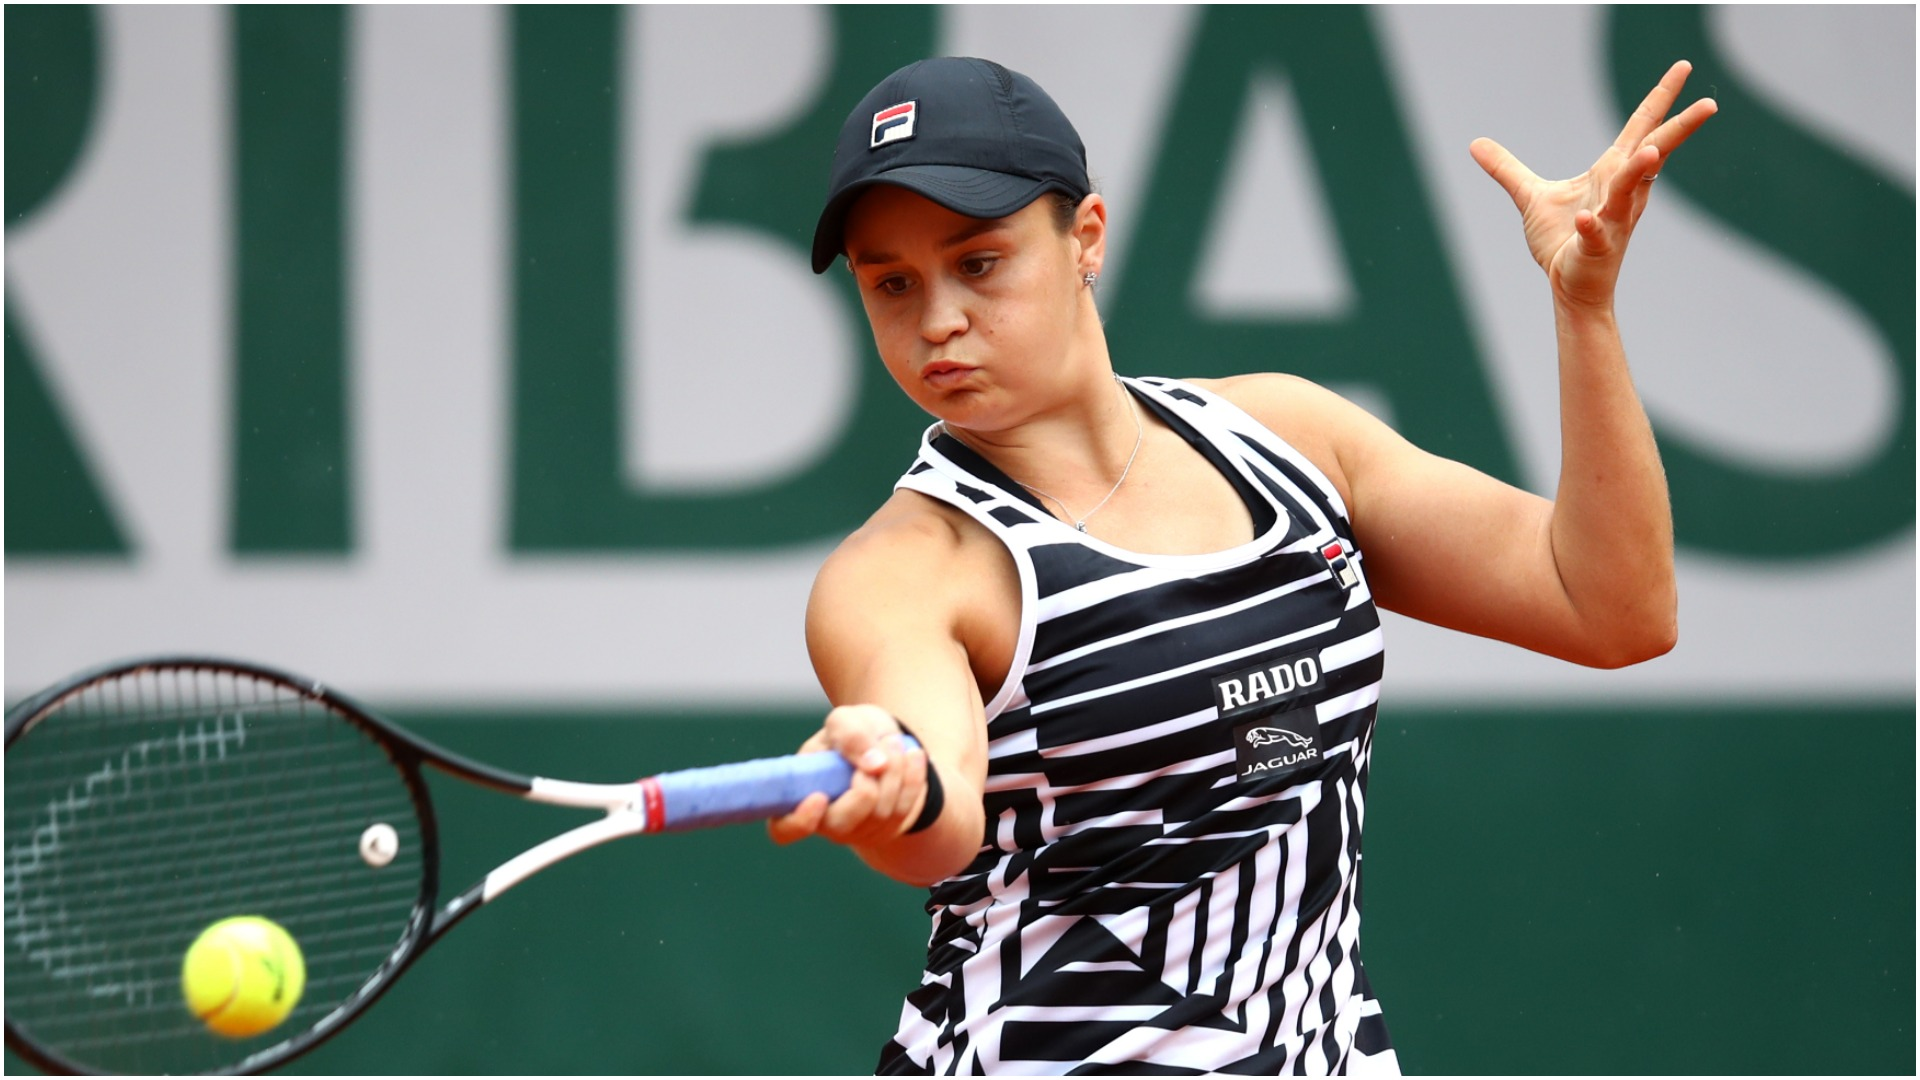 Barty beats Keys to reach French Open semifinals